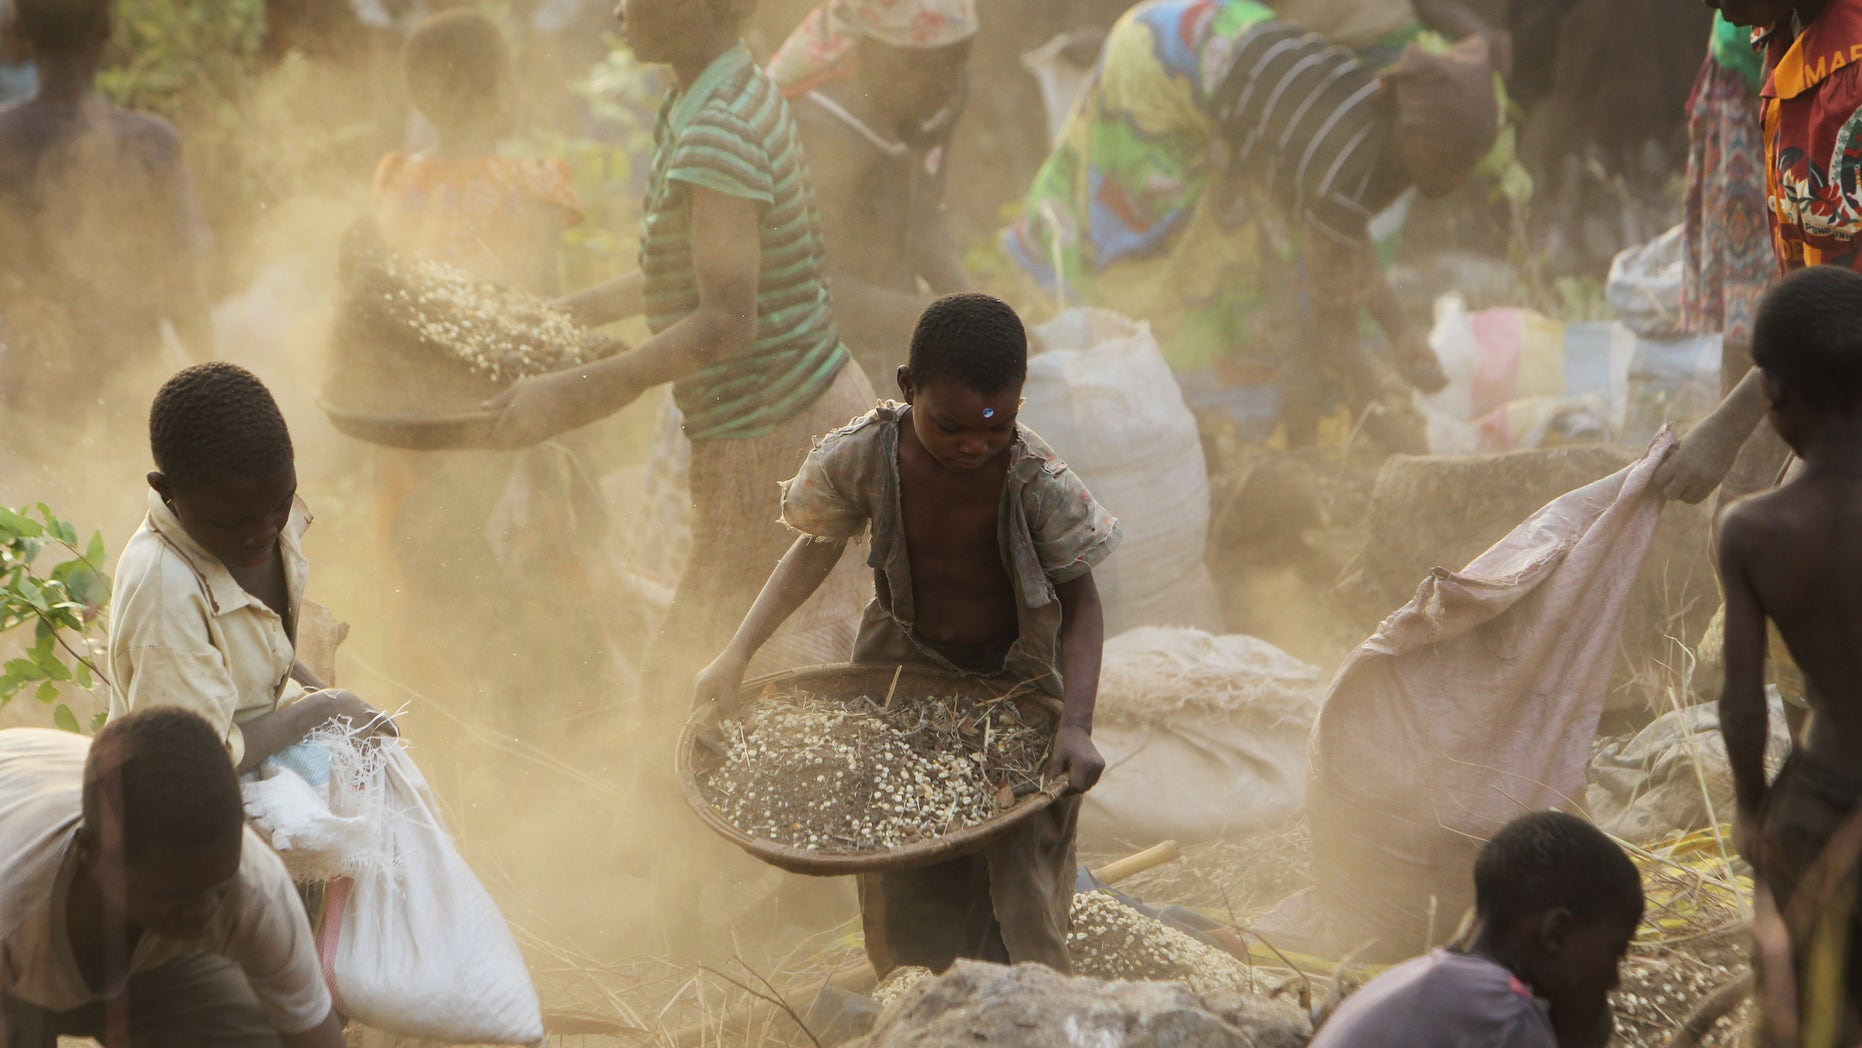 Women and children separate grain from soil, after the driver of a truck lost control of a vehicle which spilled grain, in the forest in Machinga, about 200 kilometers north east of Blantyre, Malawi, Tuesday, May 24, 2016. Hundreds of villagers thronged the spot and helped themselves to some of the grain. About 2.8 million Malawians - nearly 20 percent of the population - face food insecurity, making the country one of the worst hit in Southern Africa(AP Photo/Tsvangirayi Mukwazhi)